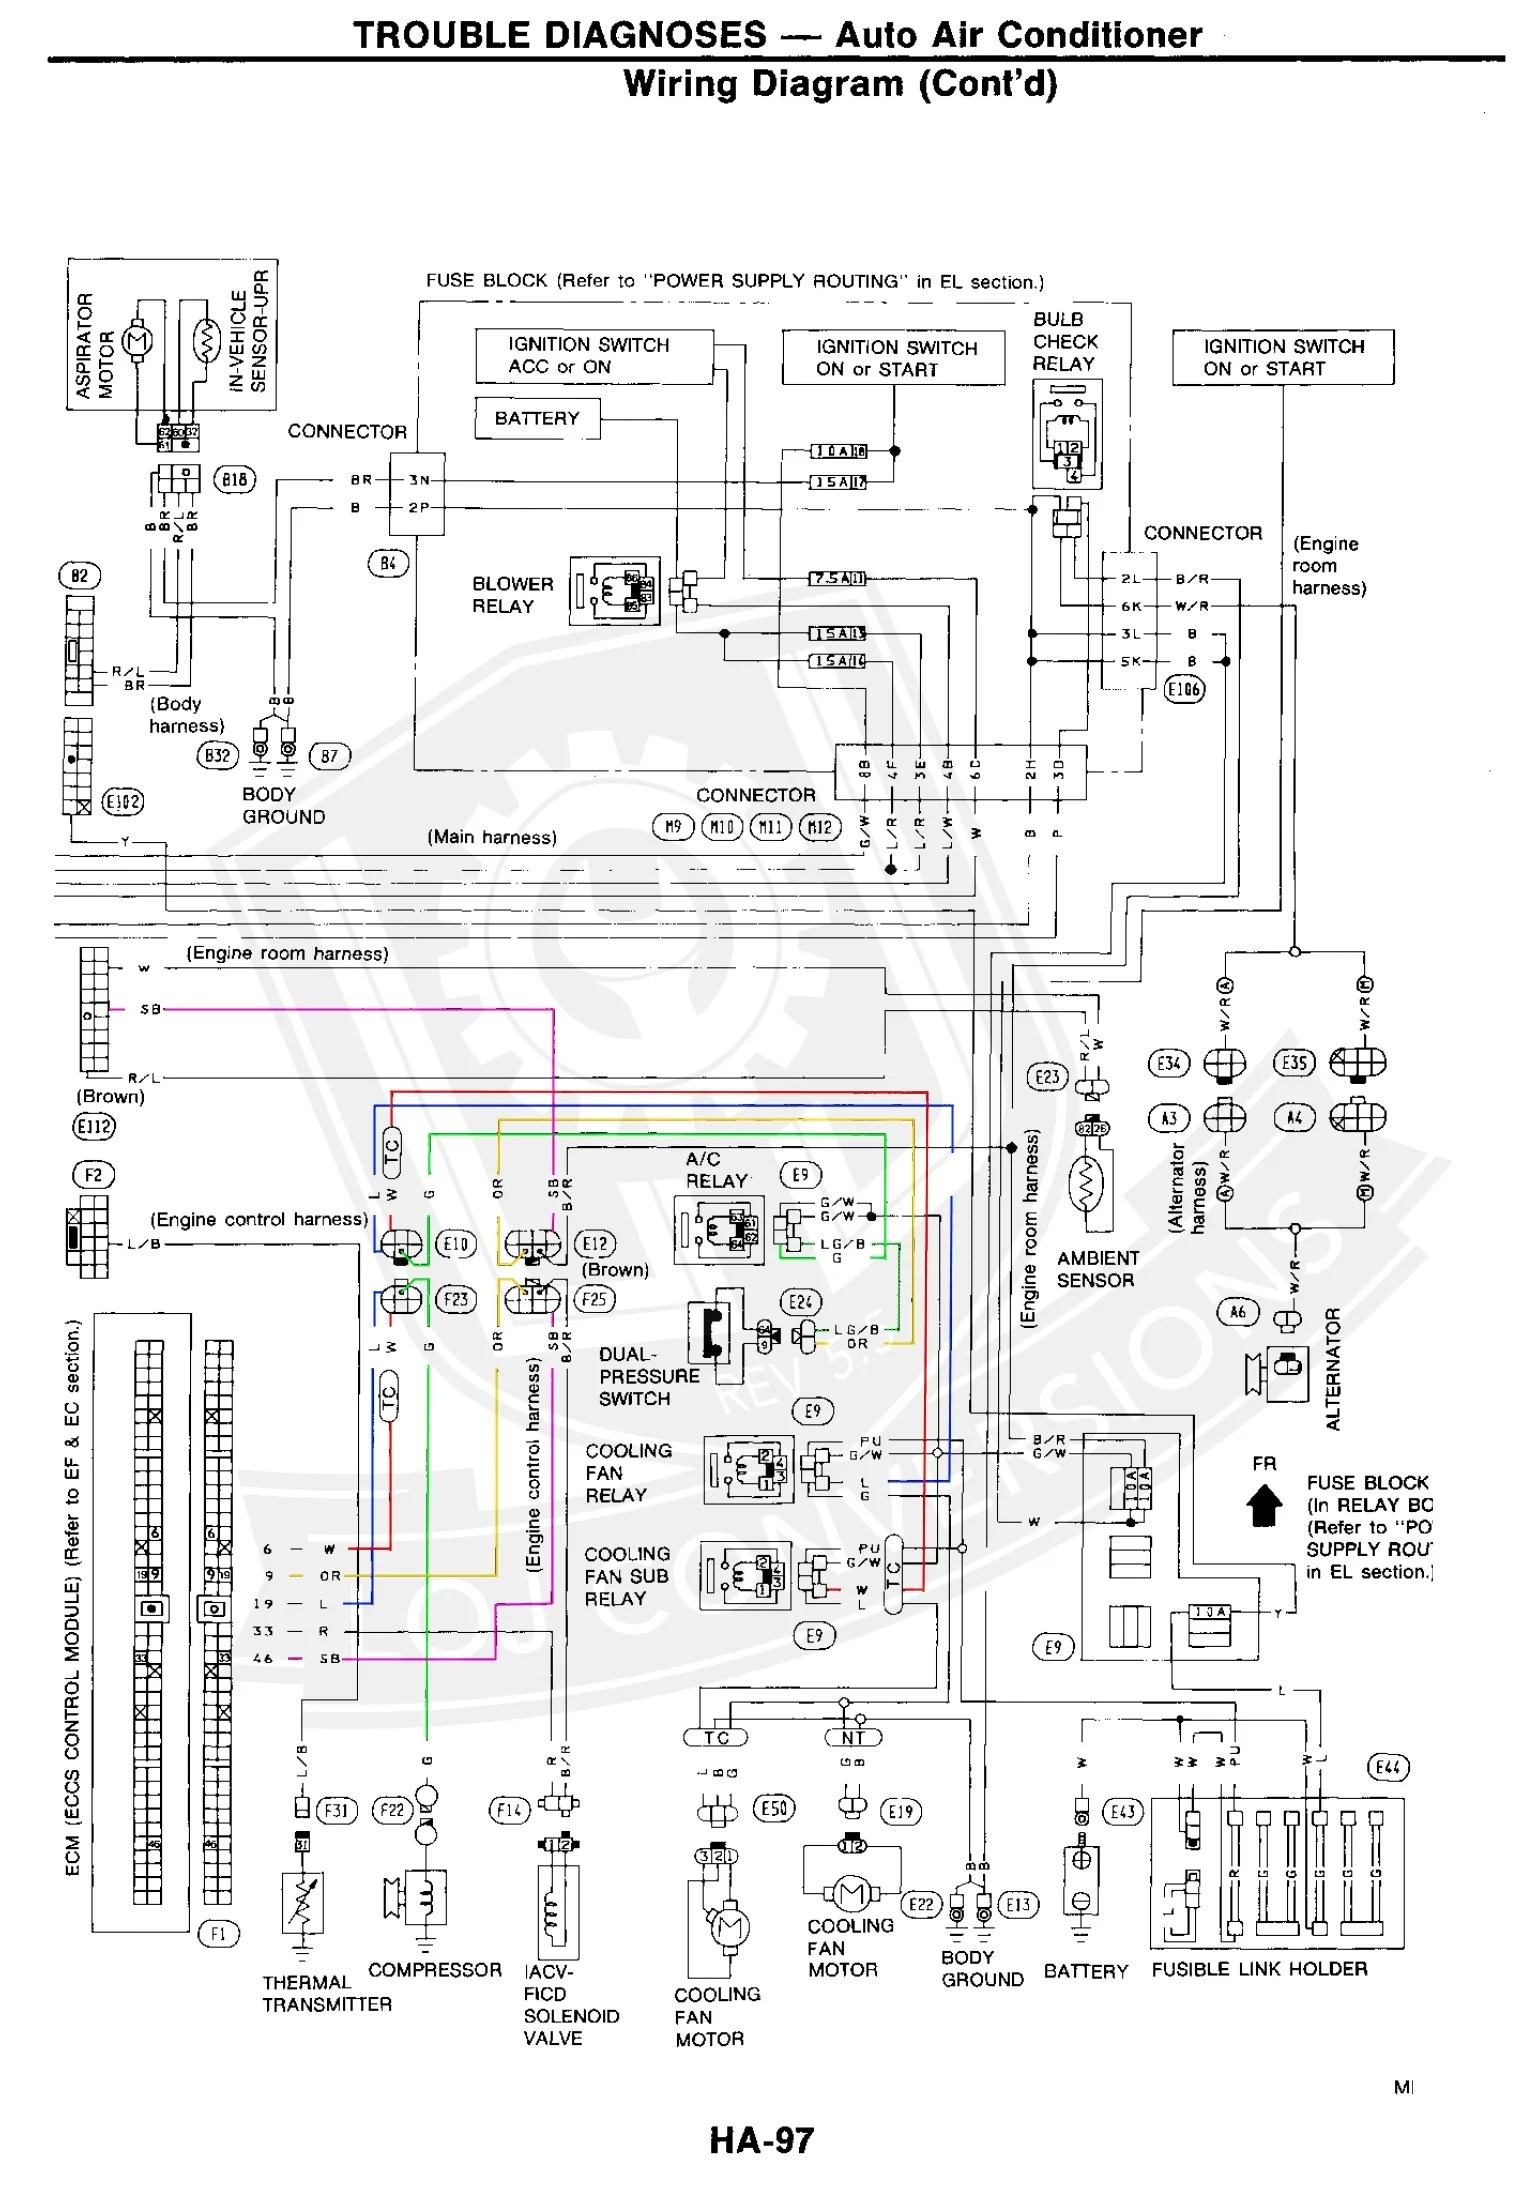 300zx wire diagram wiring diagram source pioneer harness diagram 300zx wire harness diagram [ 1515 x 2194 Pixel ]